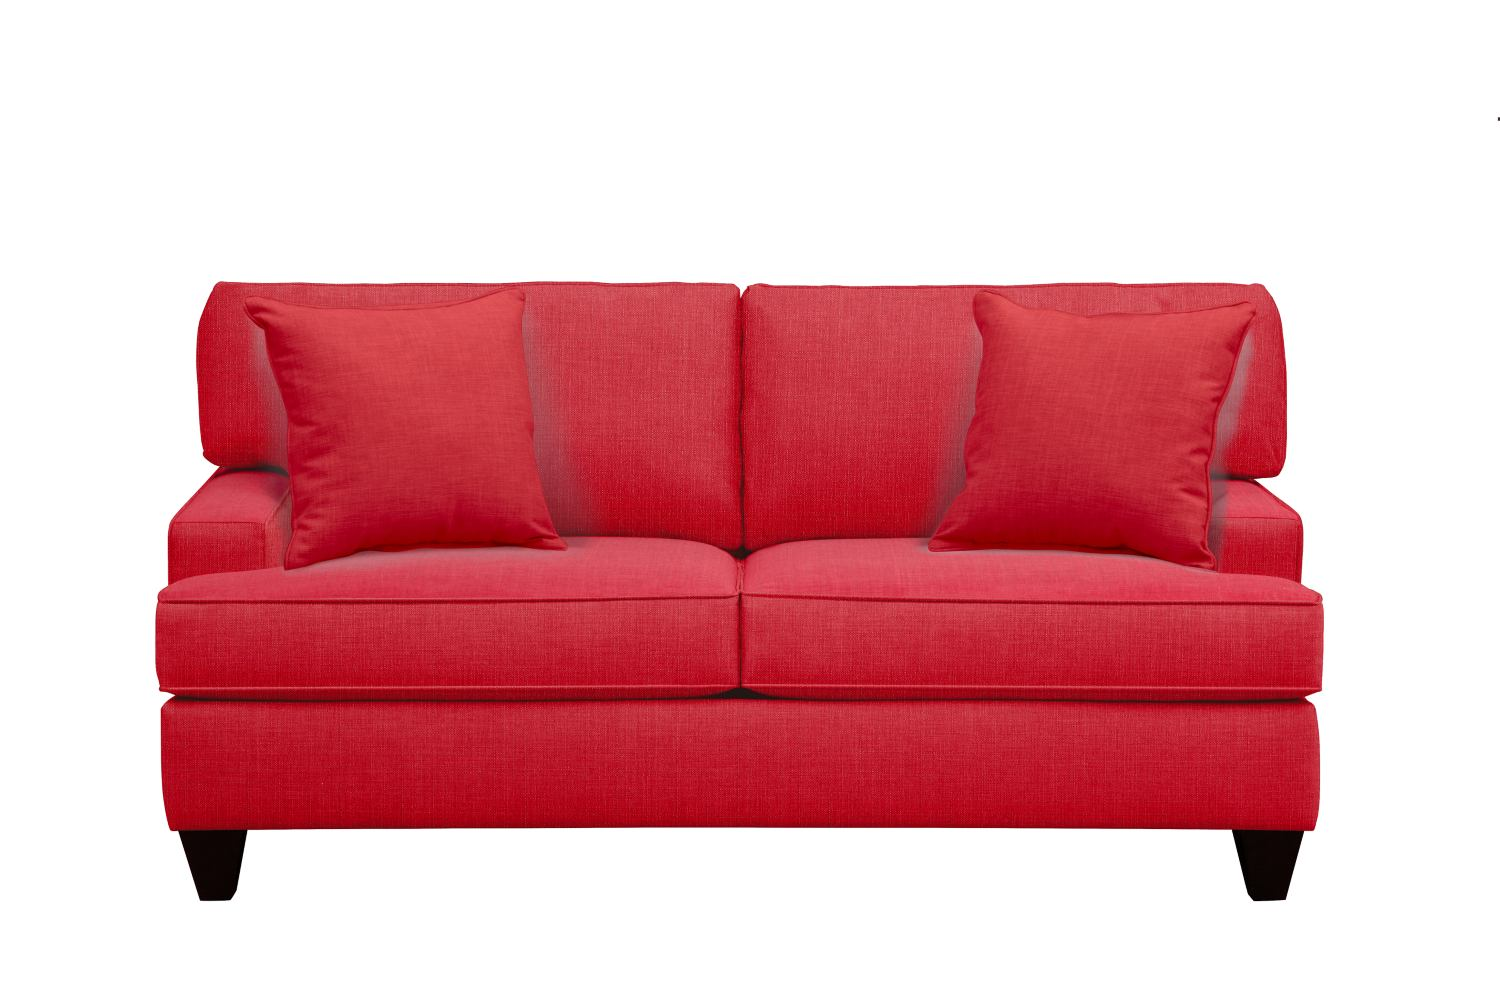 "Living Room Furniture - Conner Track Arm Sofa 75"" Depalma Cherry w/ Depalma Cherry Pillow"